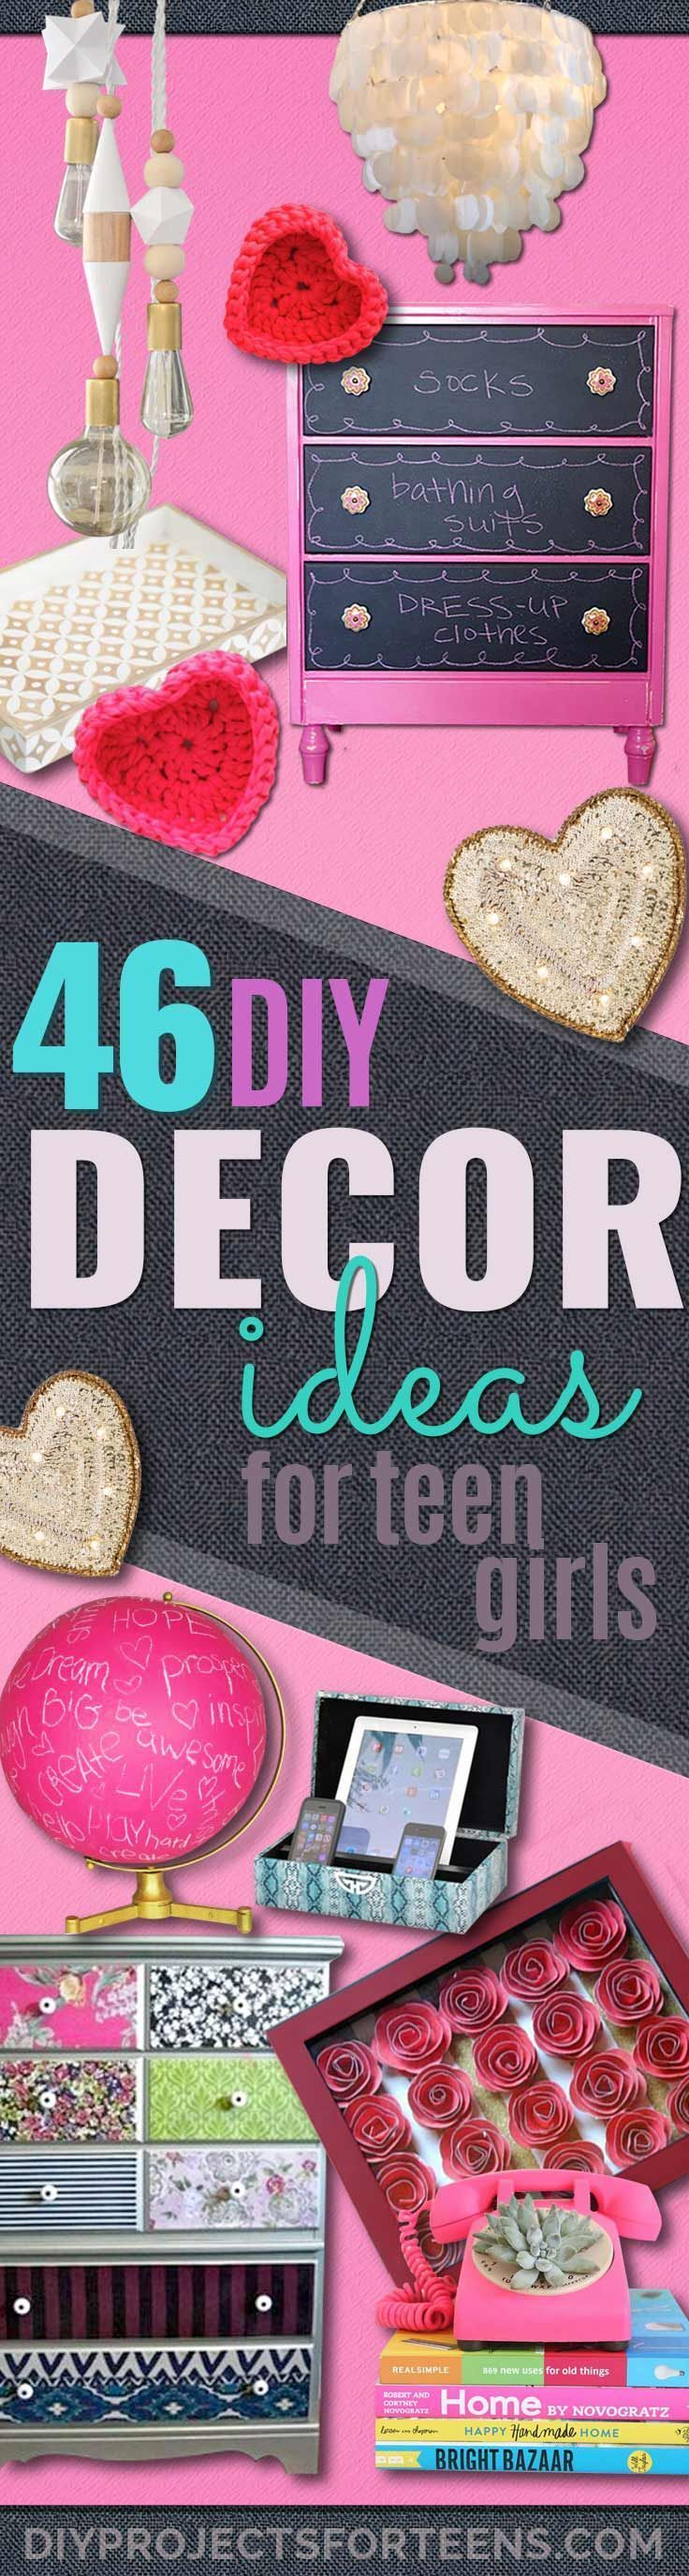 Best 25  Diy teen room decor ideas on Pinterest   Diy bedroom decor for  teens  Room decor diy for teens and Diy for teens. Best 25  Diy teen room decor ideas on Pinterest   Diy bedroom